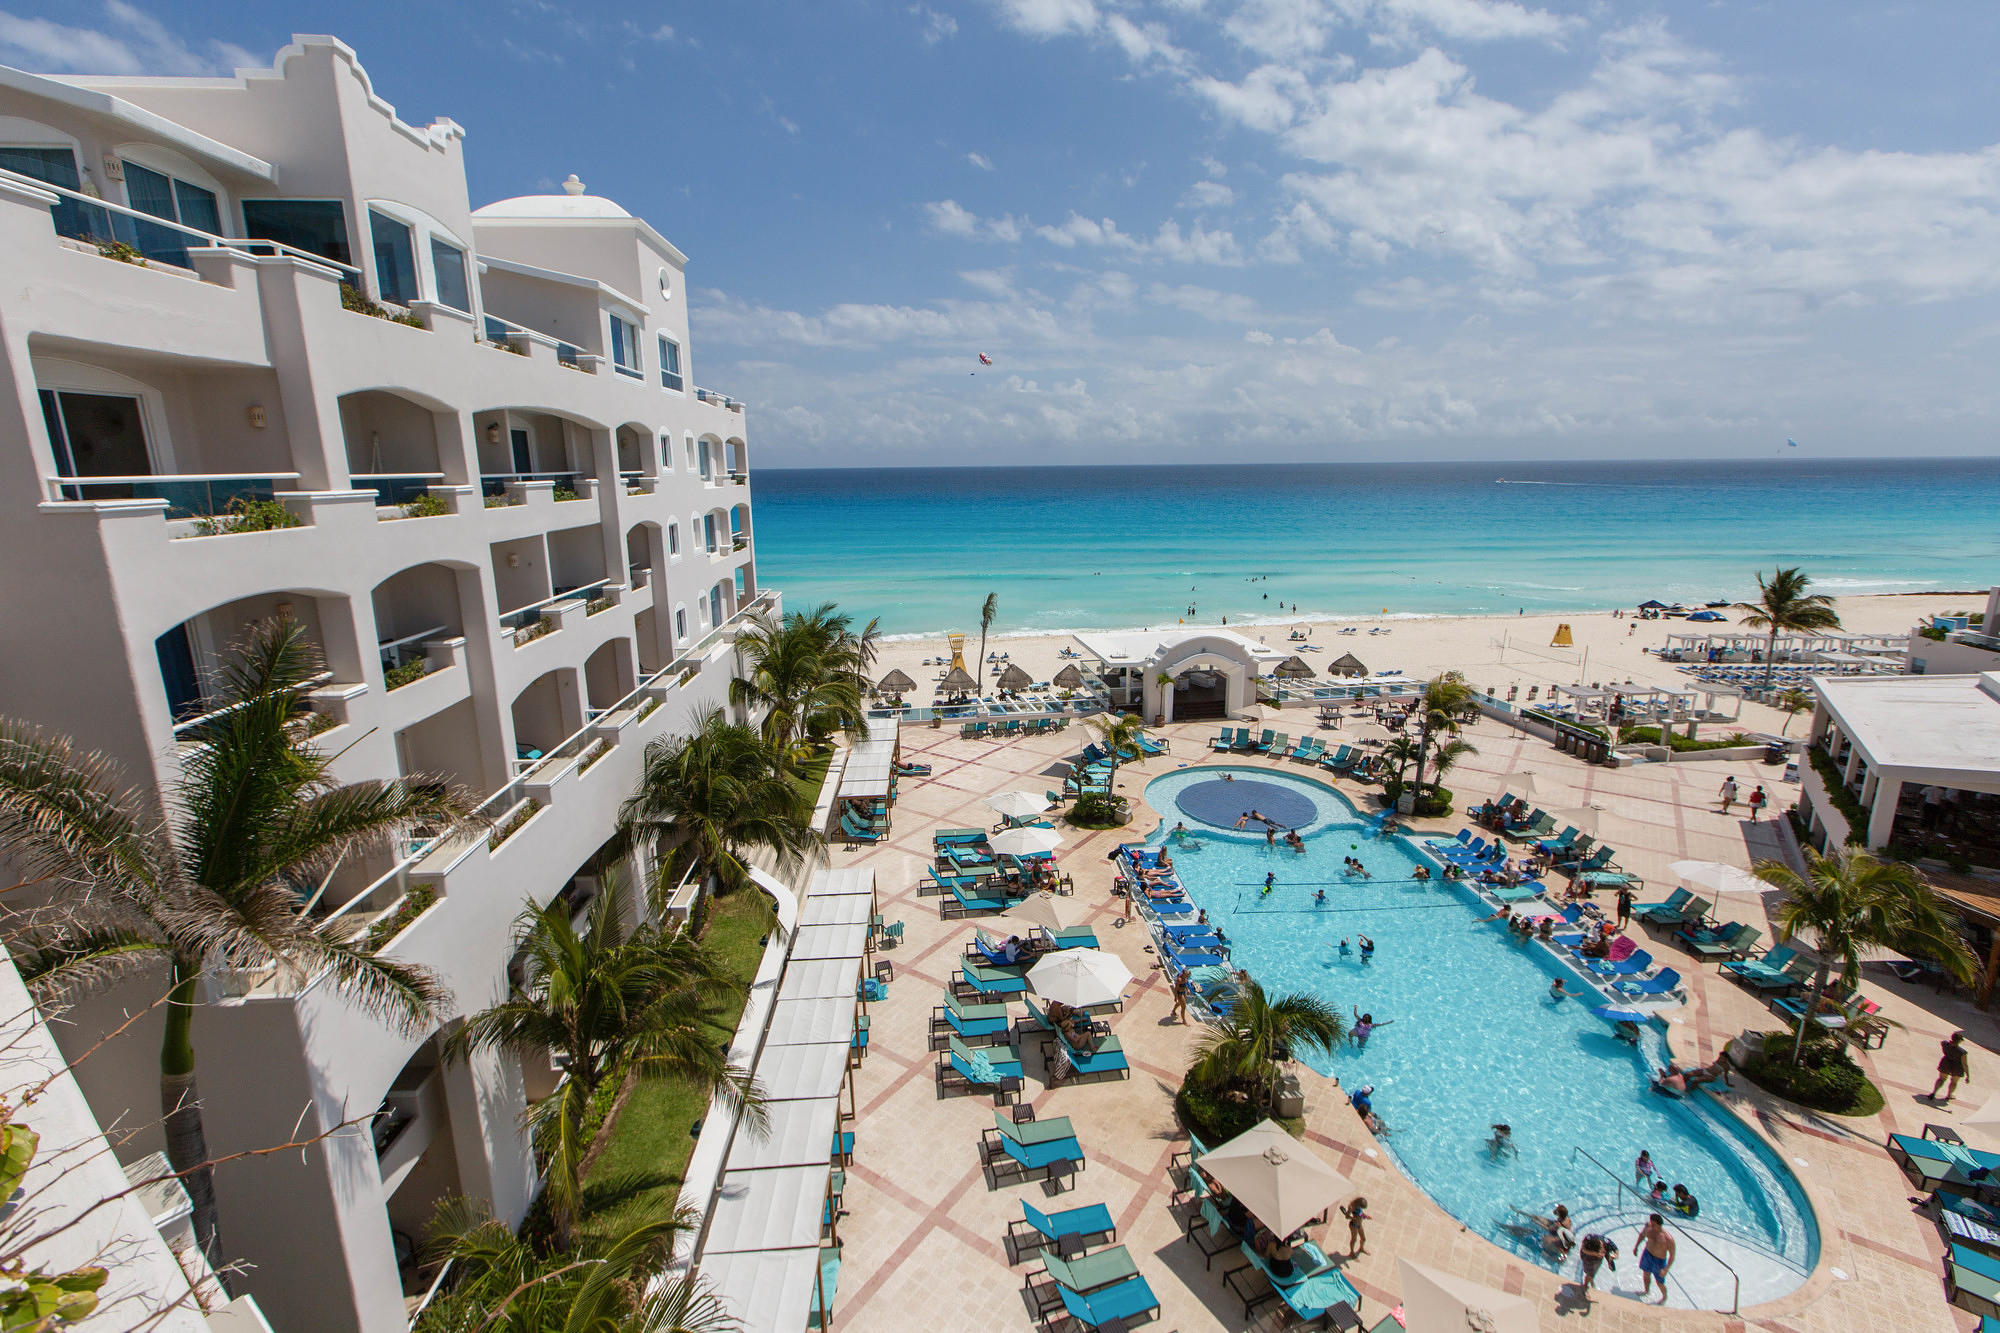 Pool and beach view from Junior Suite Ocean View at Panama Jack Resorts Cancun